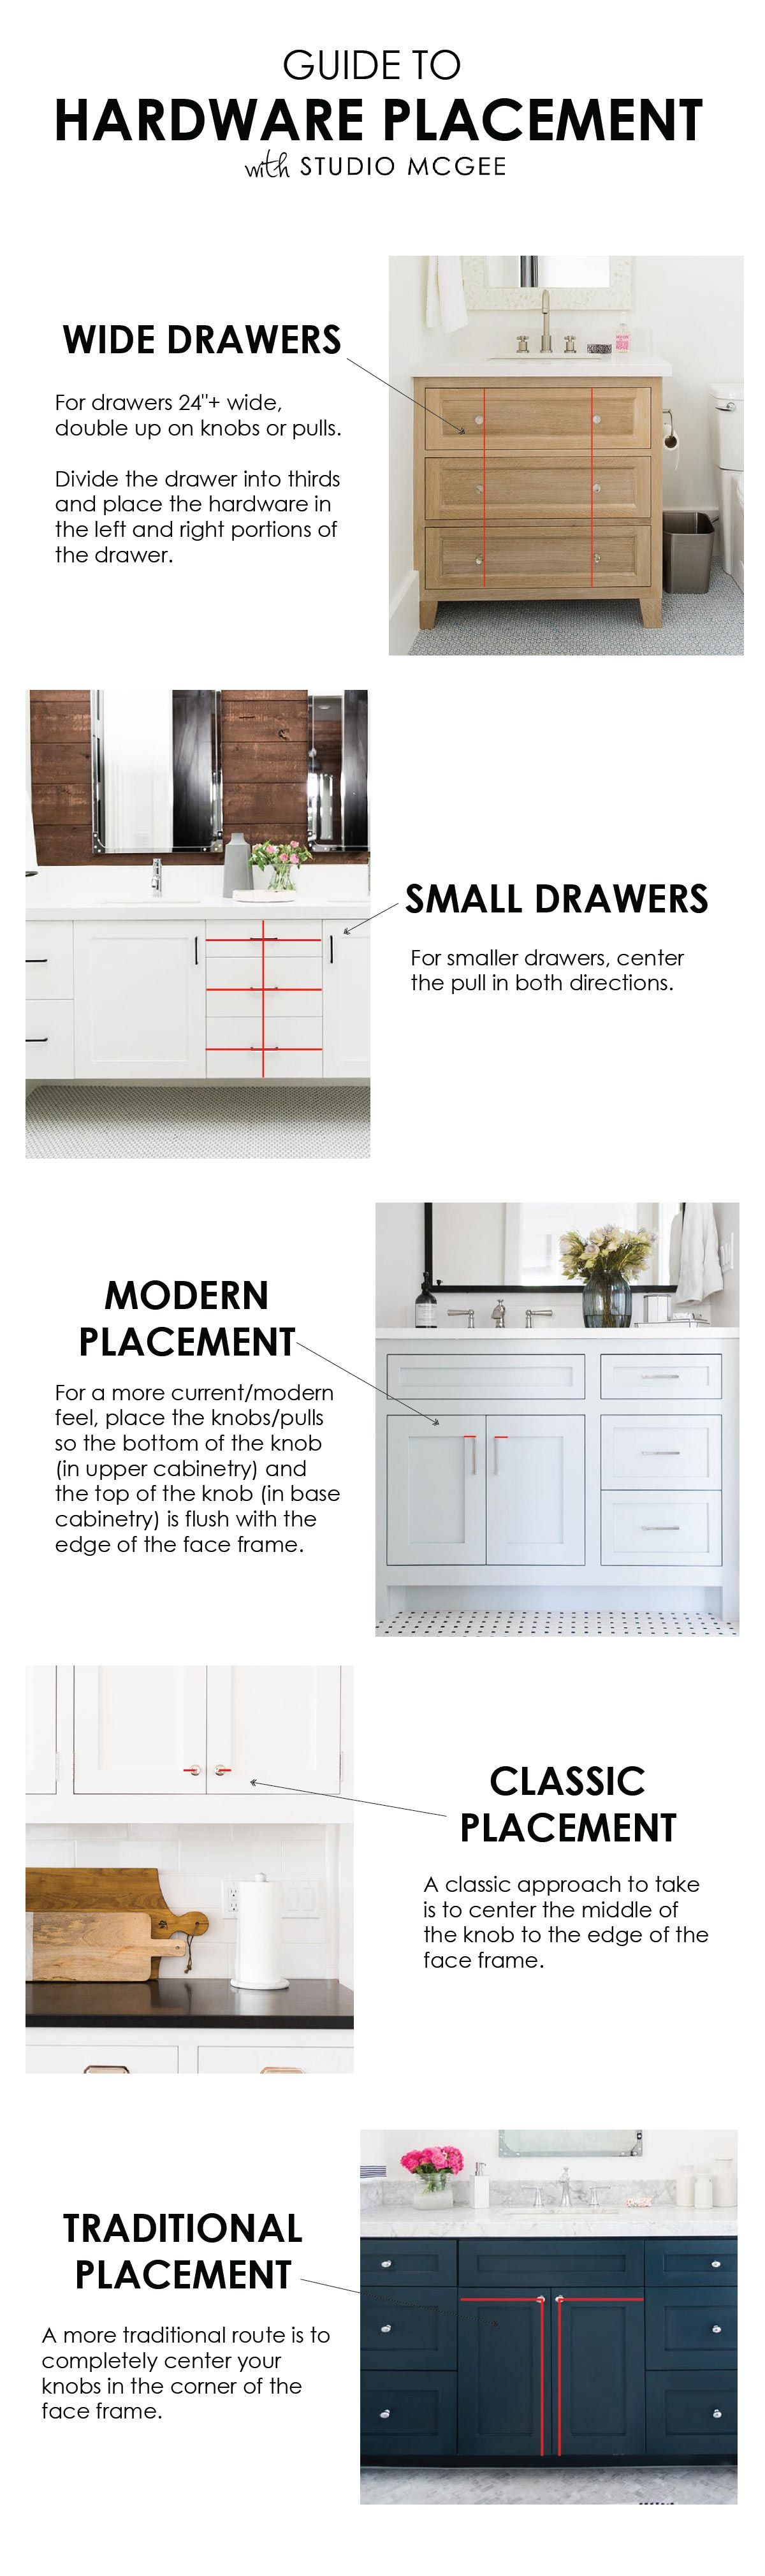 Cabinet Hardware Placement Guide Interior Design Kitchen